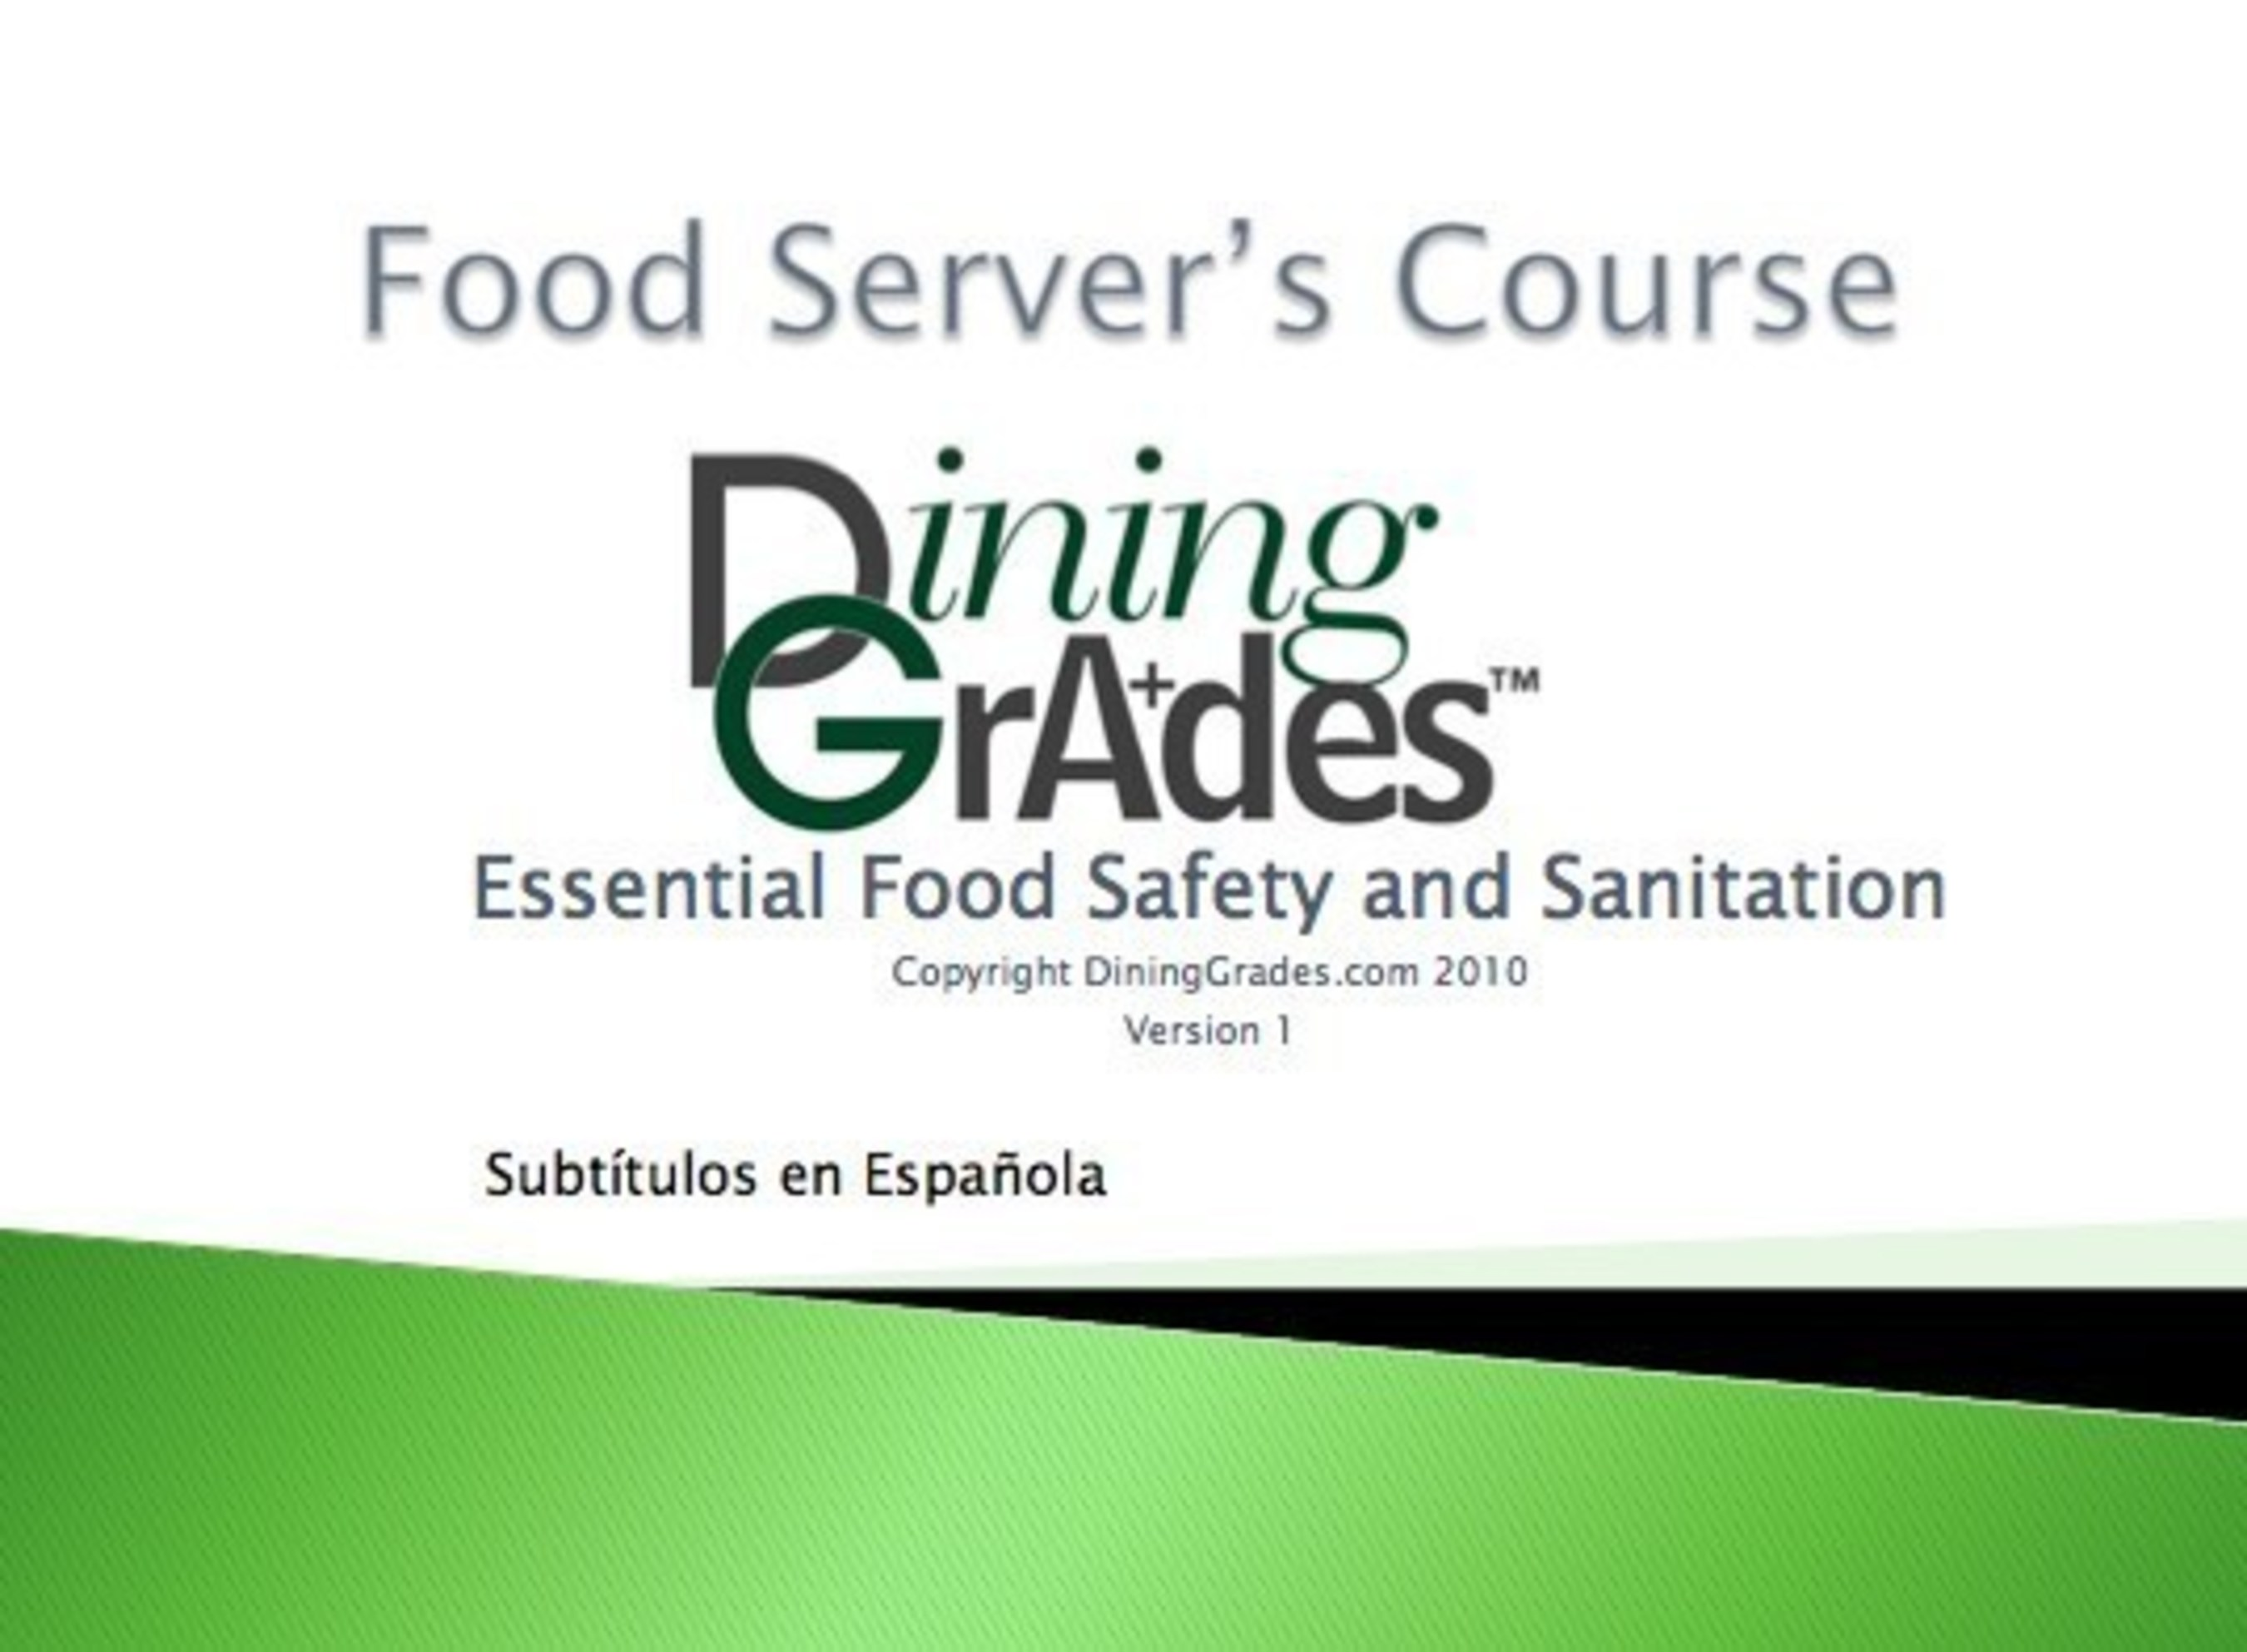 DiningGrades Offers Free Food Safety Courses to Reduce Dirty